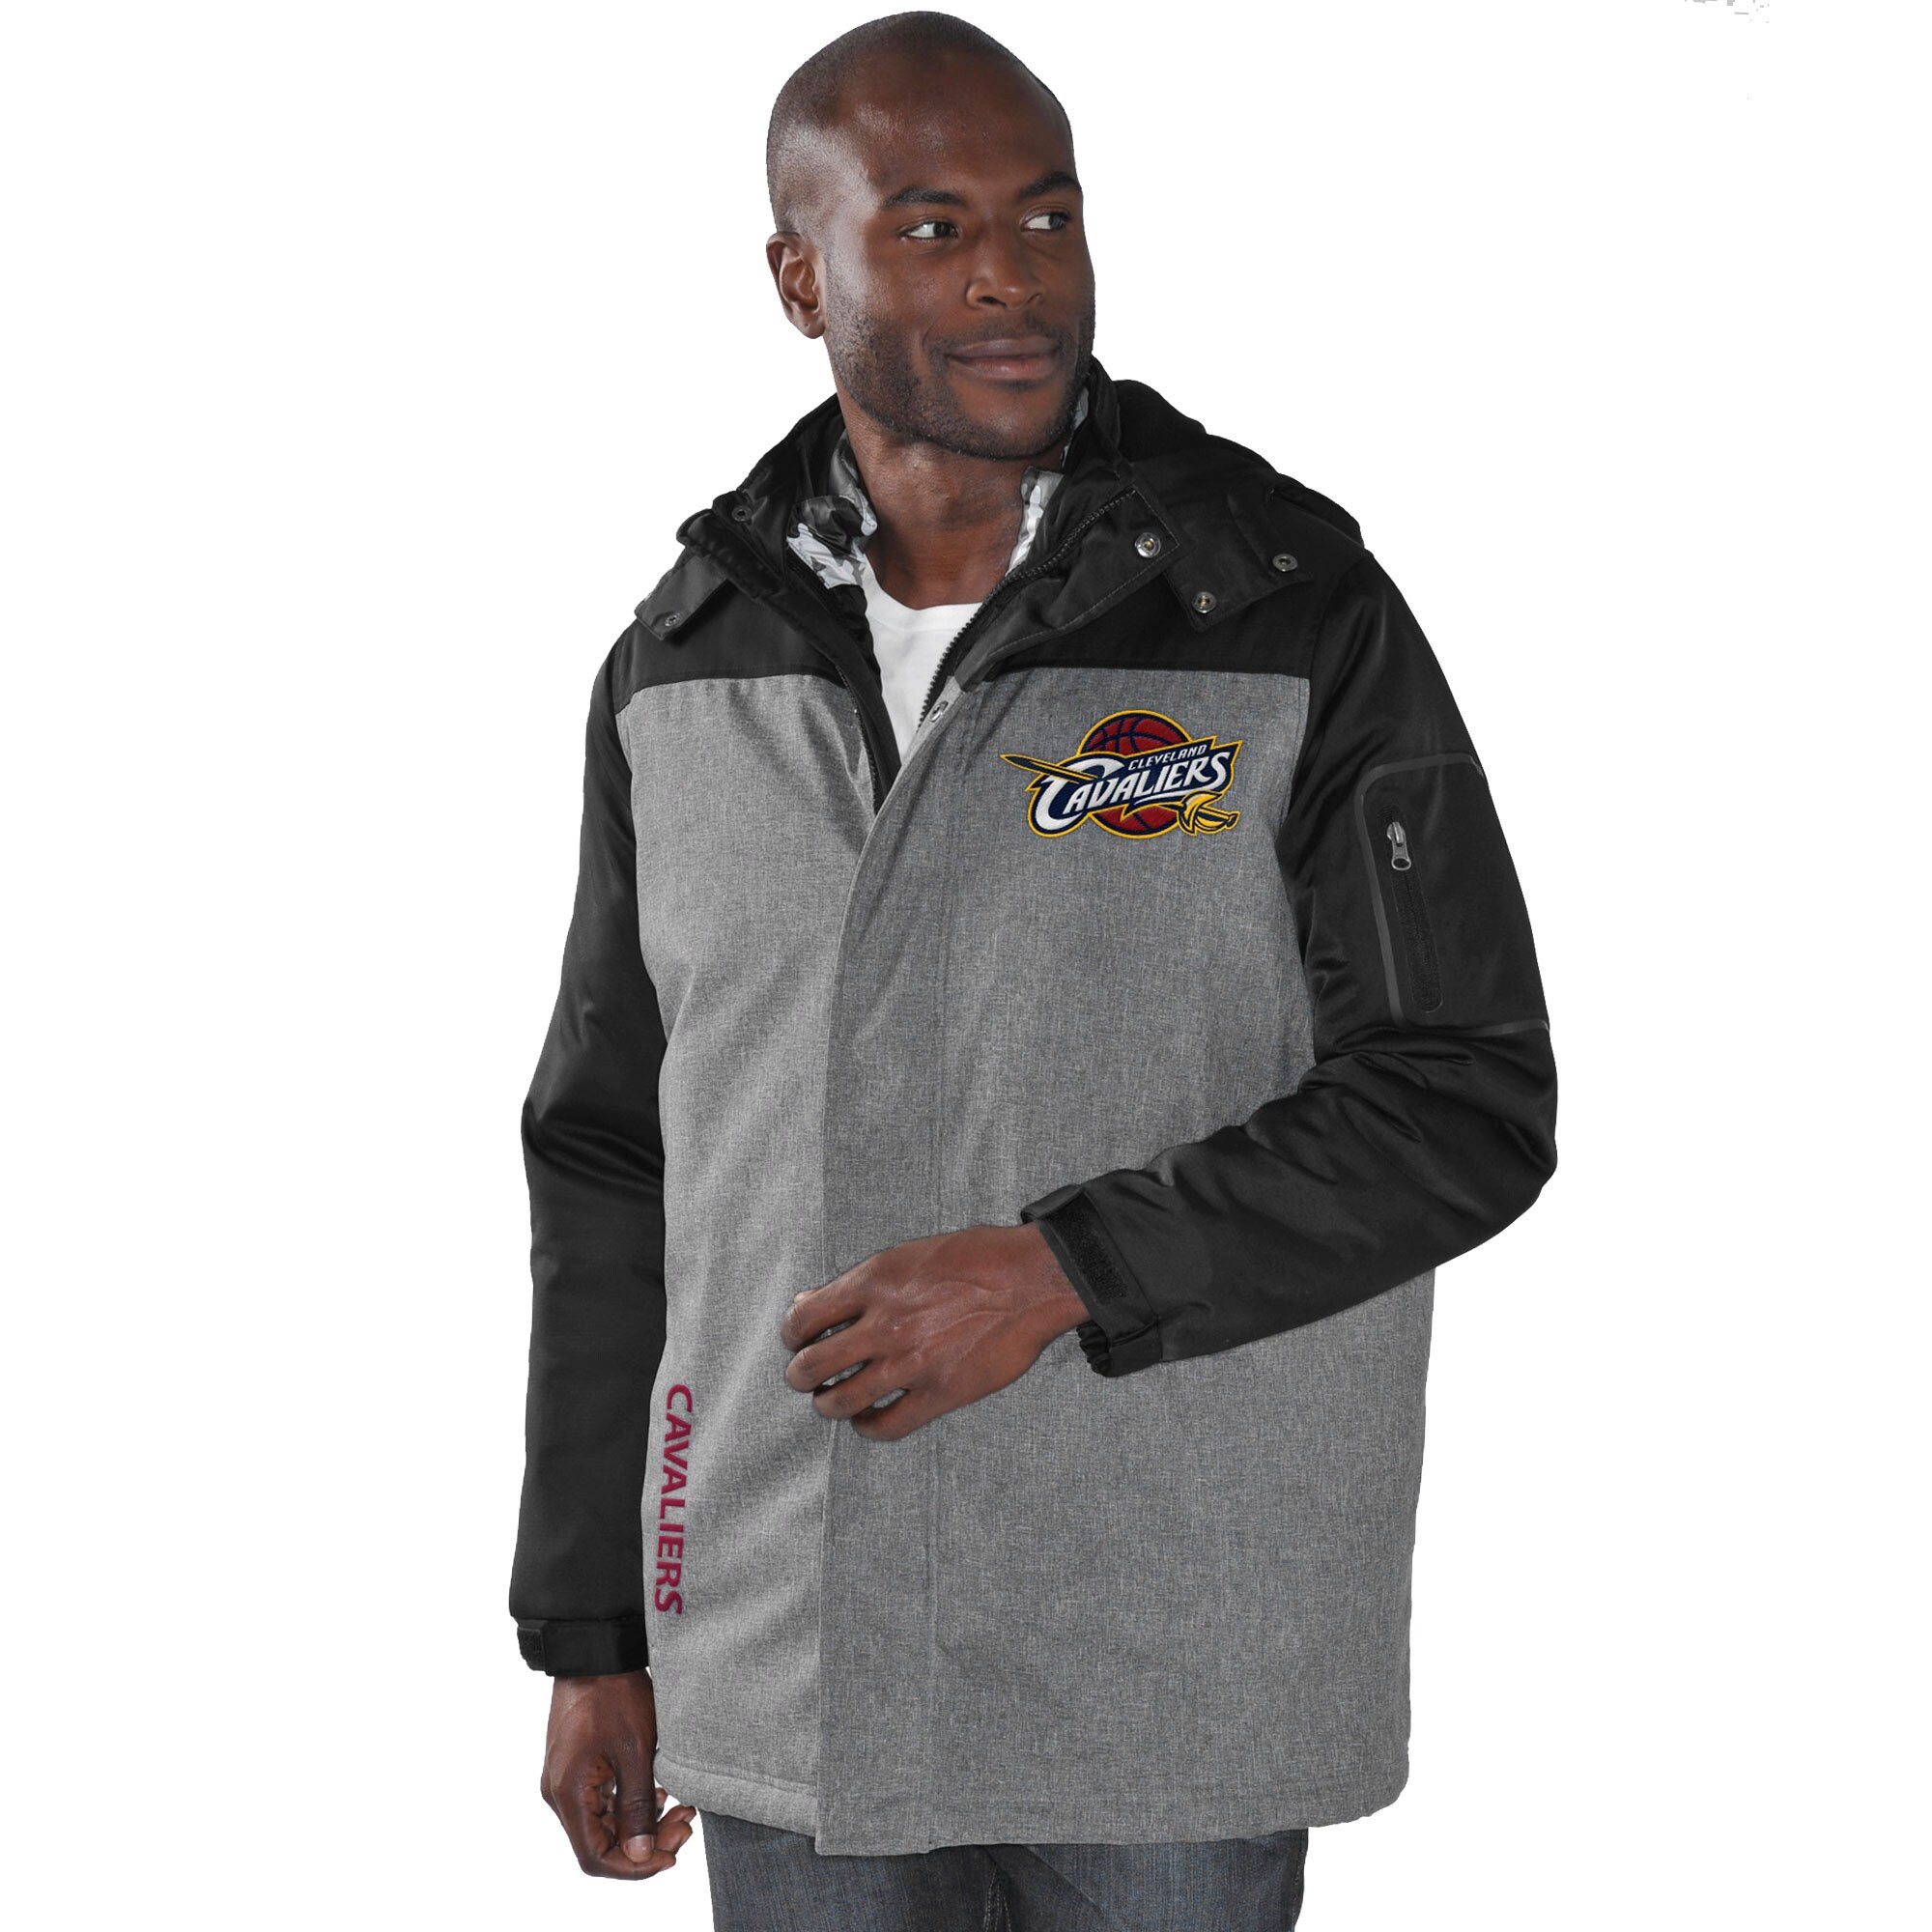 Cleveland Cavaliers G-III Sports by Carl Banks 3-in-1 Systems Jacket - Charcoal/Camo